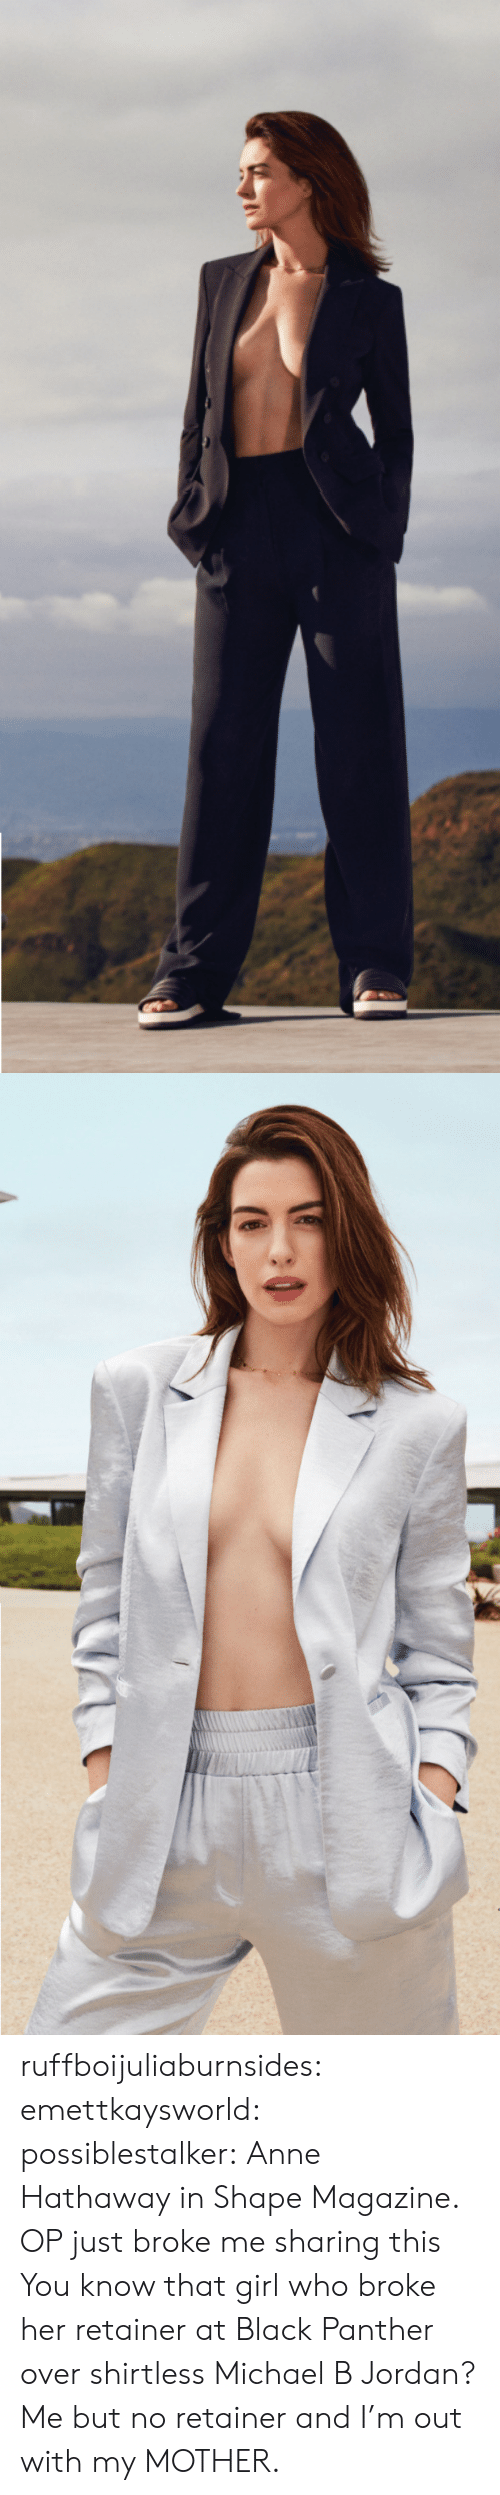 Black Panther: ruffboijuliaburnsides: emettkaysworld:   possiblestalker:  Anne Hathaway in Shape Magazine.   OP just broke me sharing this   You know that girl who broke her retainer at Black Panther over shirtless Michael B Jordan? Me but no retainer and I'm out with my MOTHER.